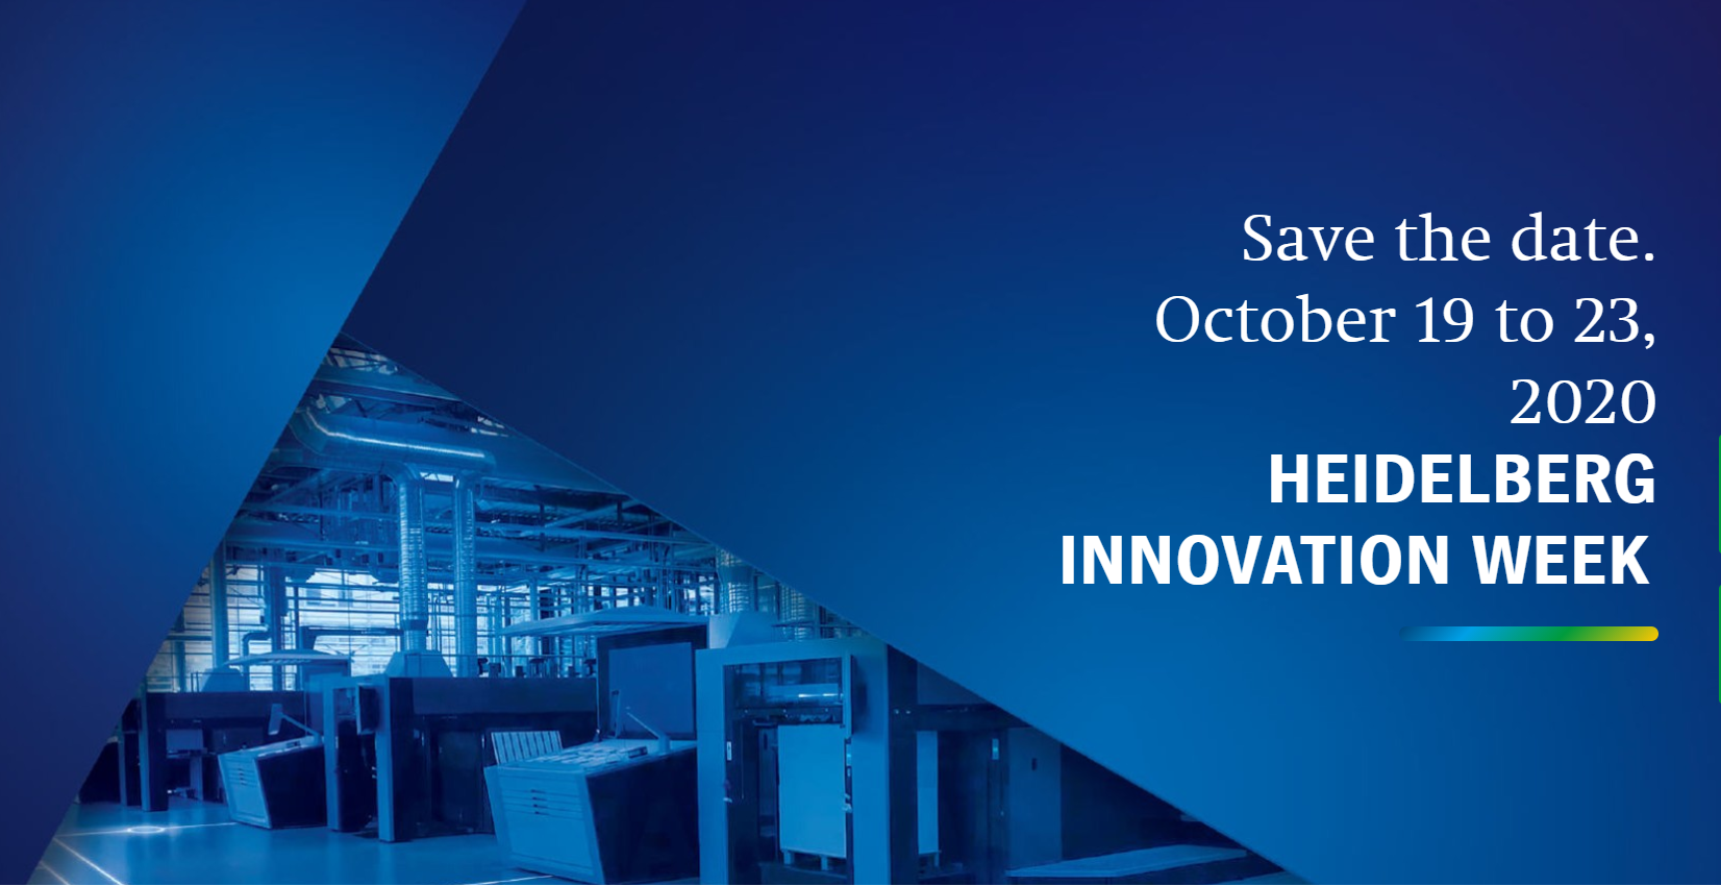 Heidelberg Innovation Week